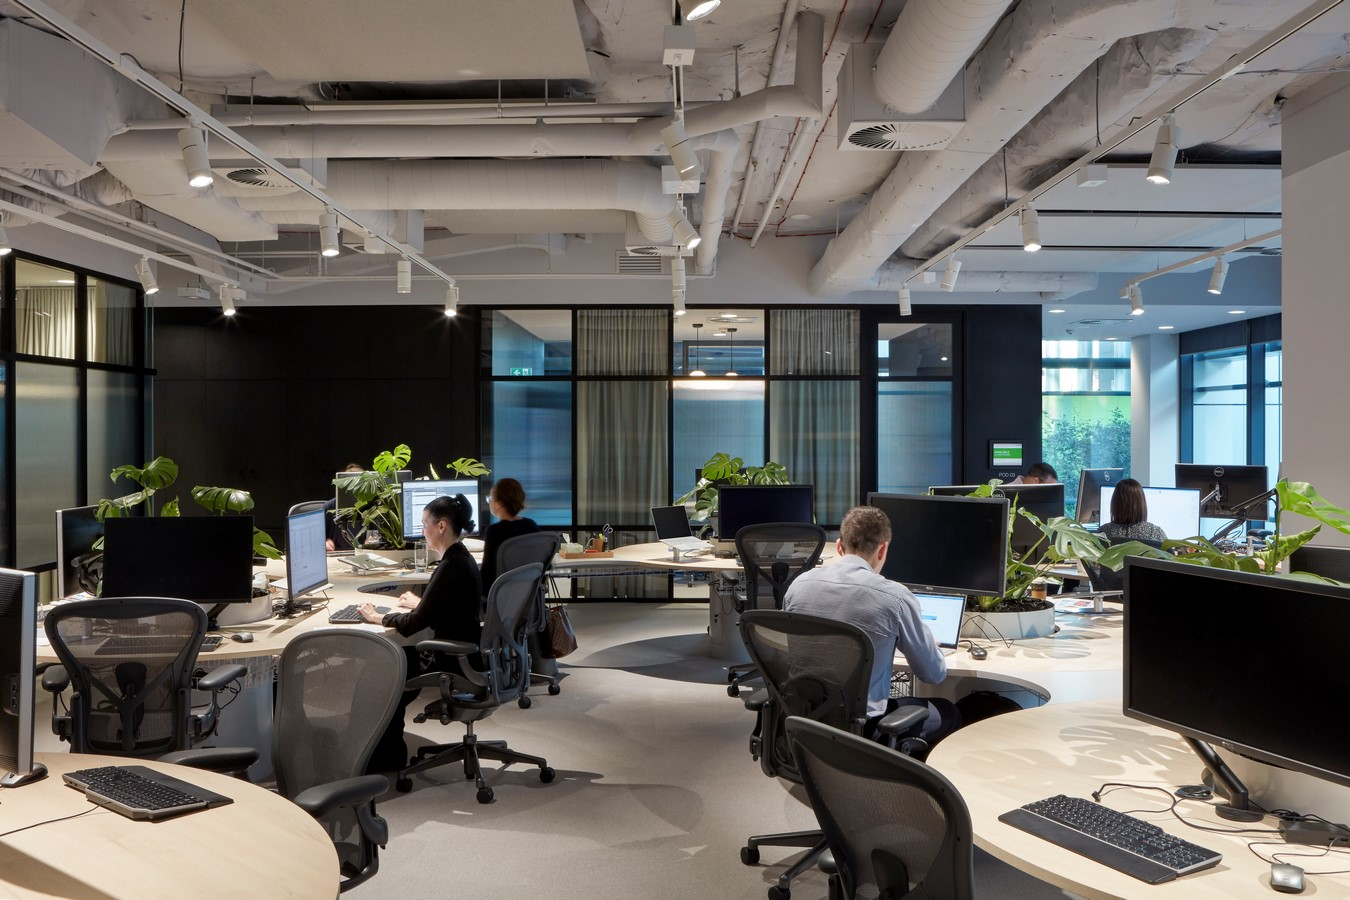 Charter Hall New Workplace by Cox Architecture - Sheet2